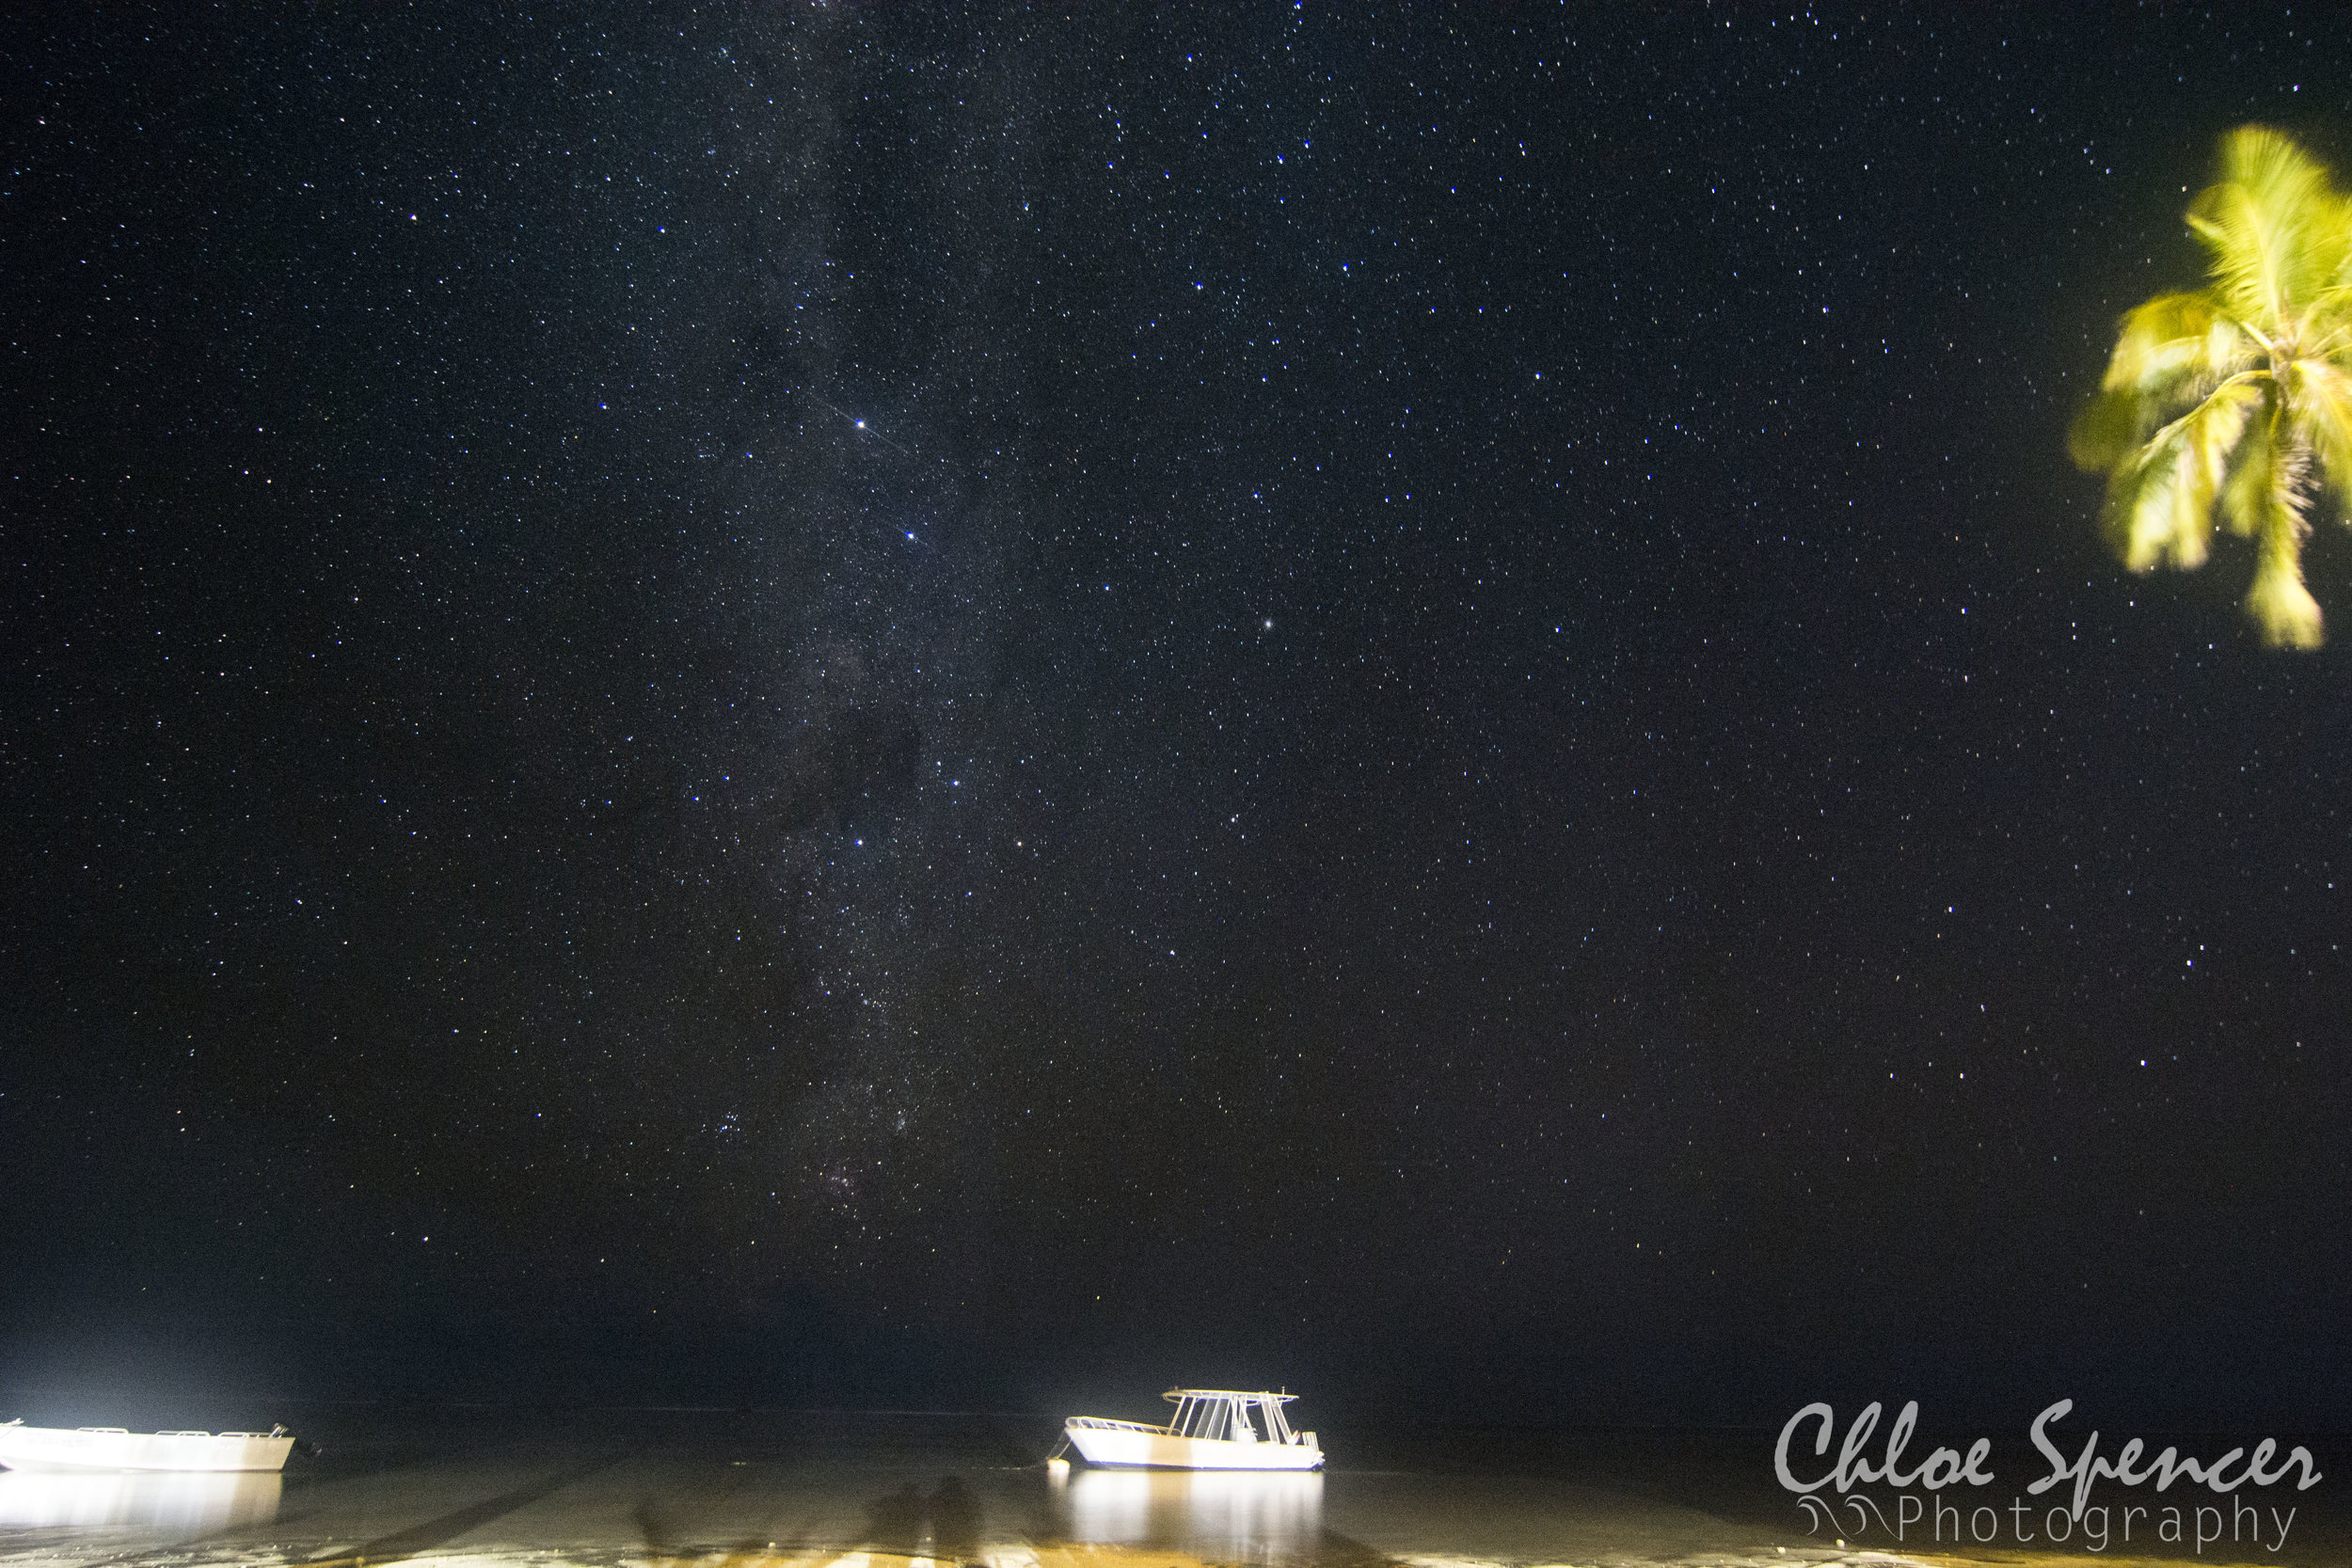 CLICK   for Starry Skies  These starscapes are a mix from my time in Egypt and Fiji. This is something that has really interested me and I'm enjoying taking this photographic skill all around the world.